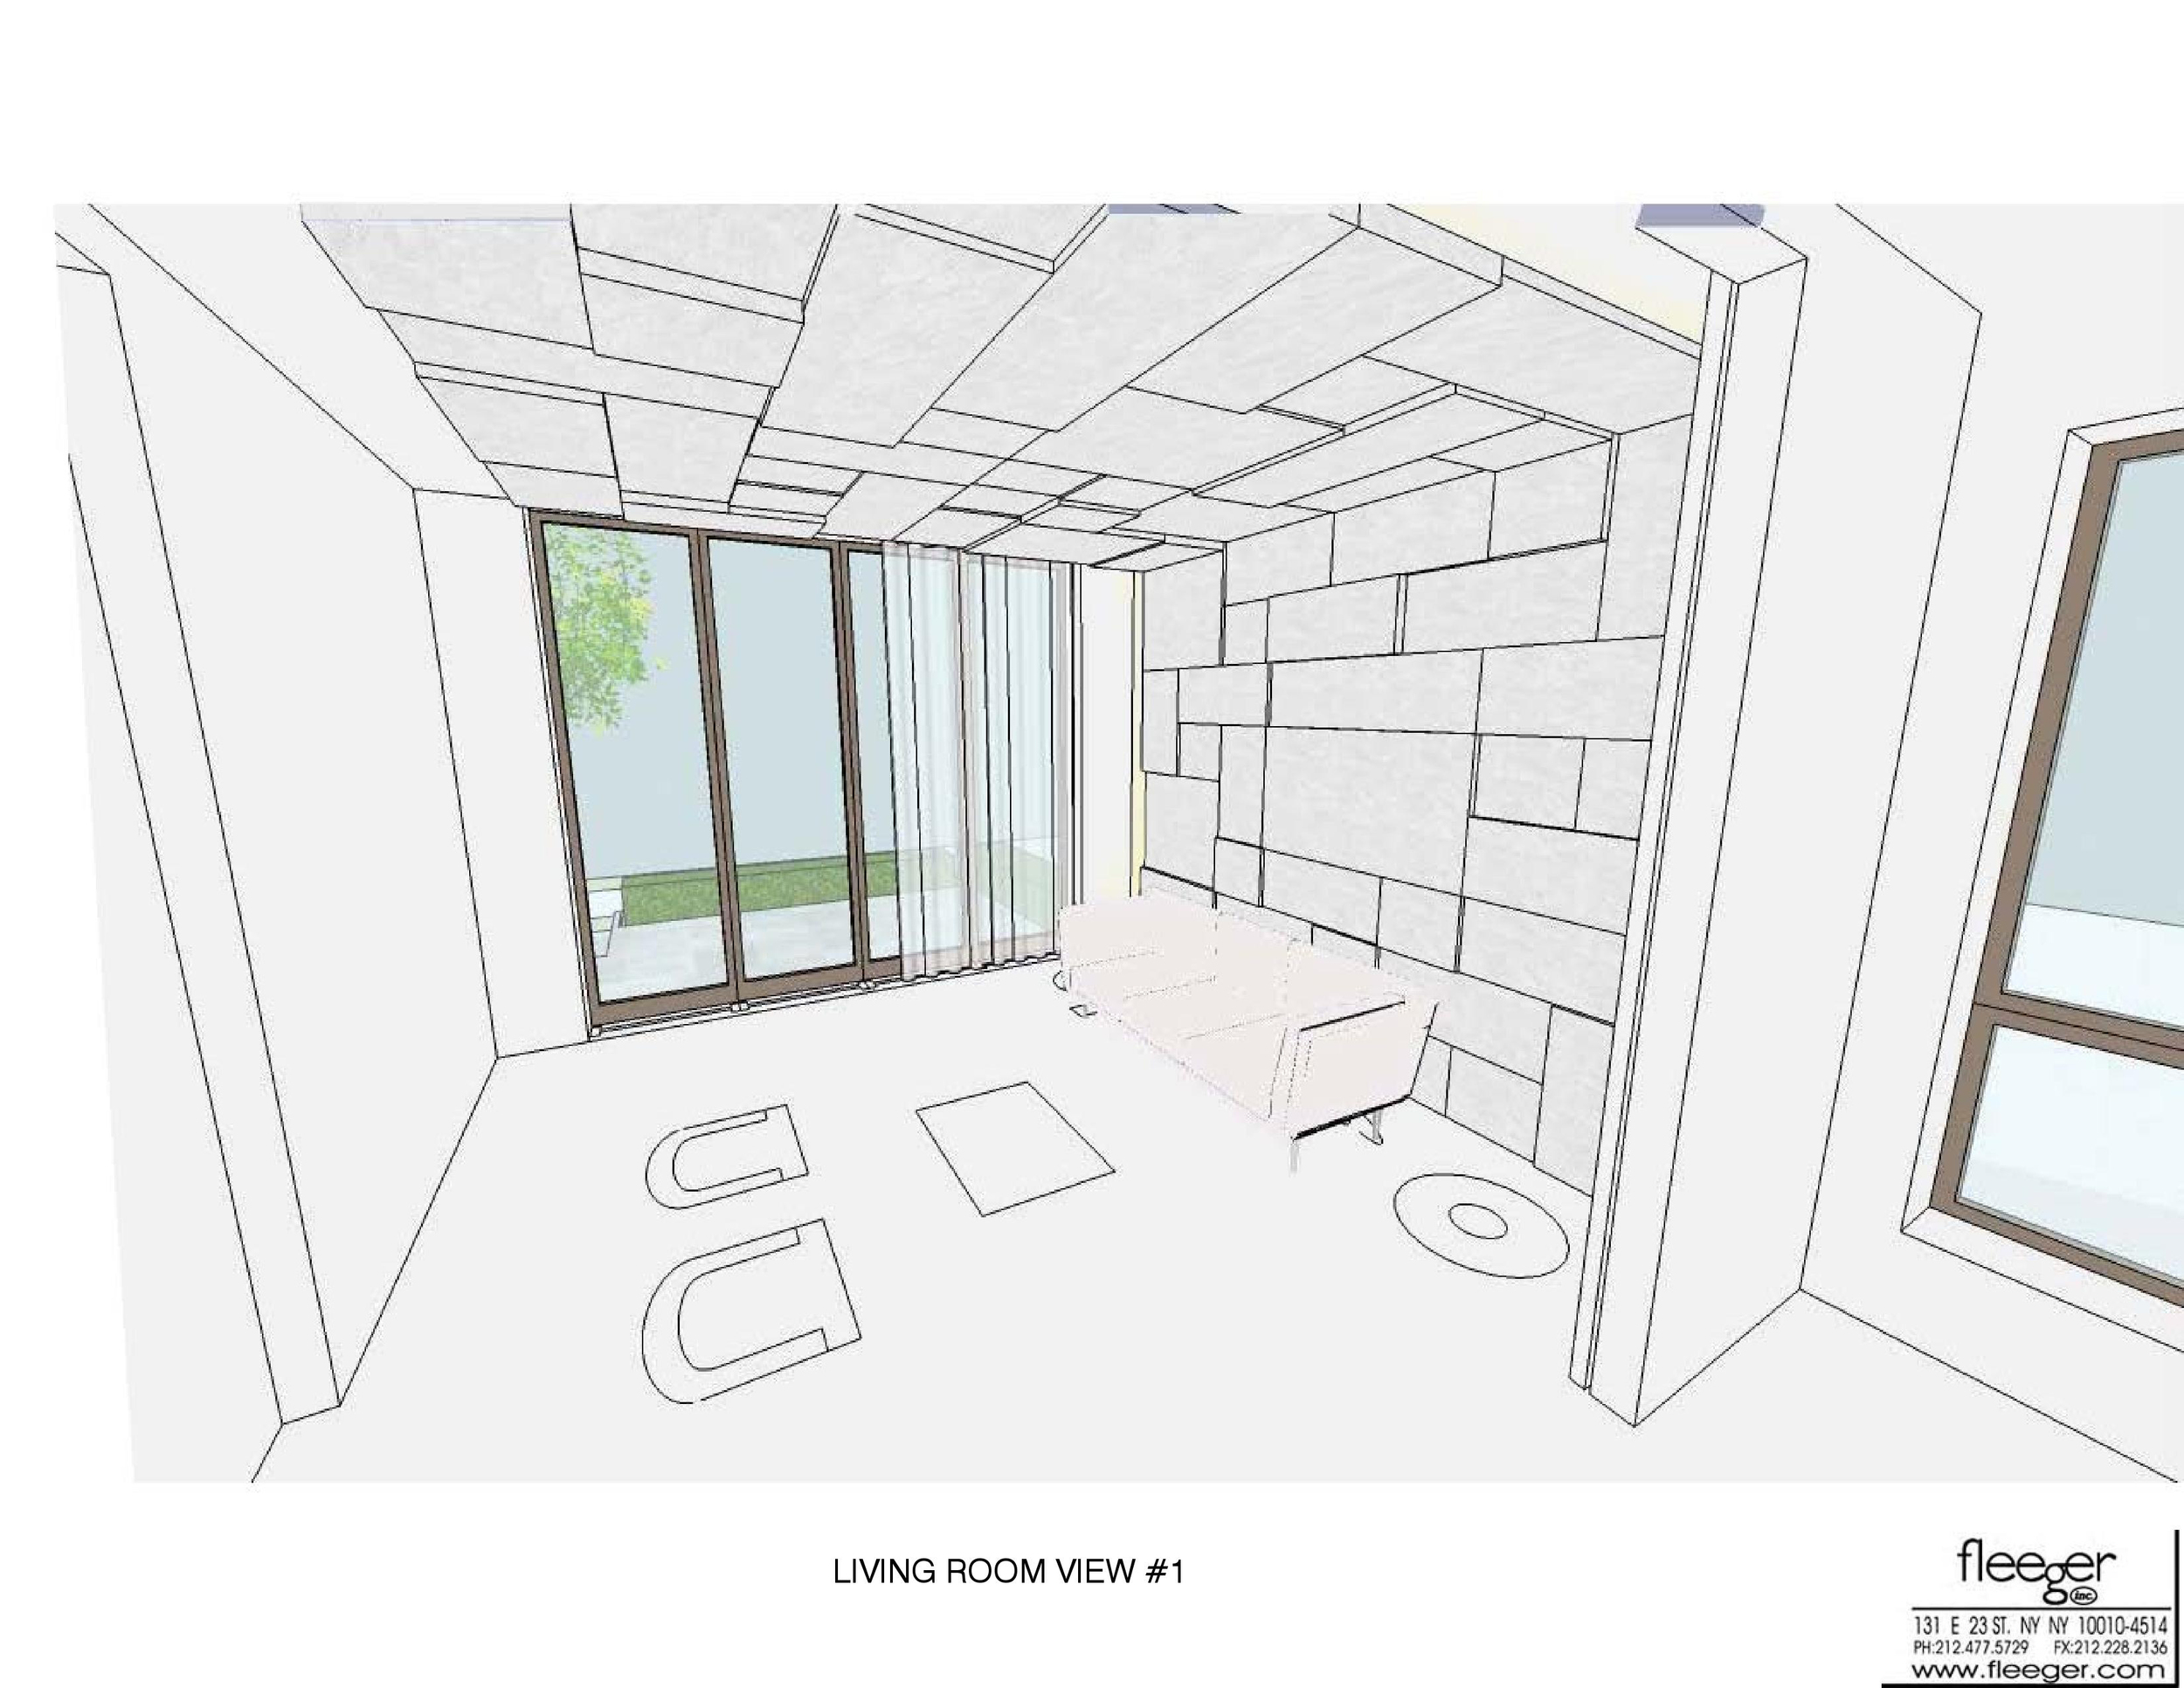 Khaski INTERIOR VIEWS COMBINED-page-001.jpg